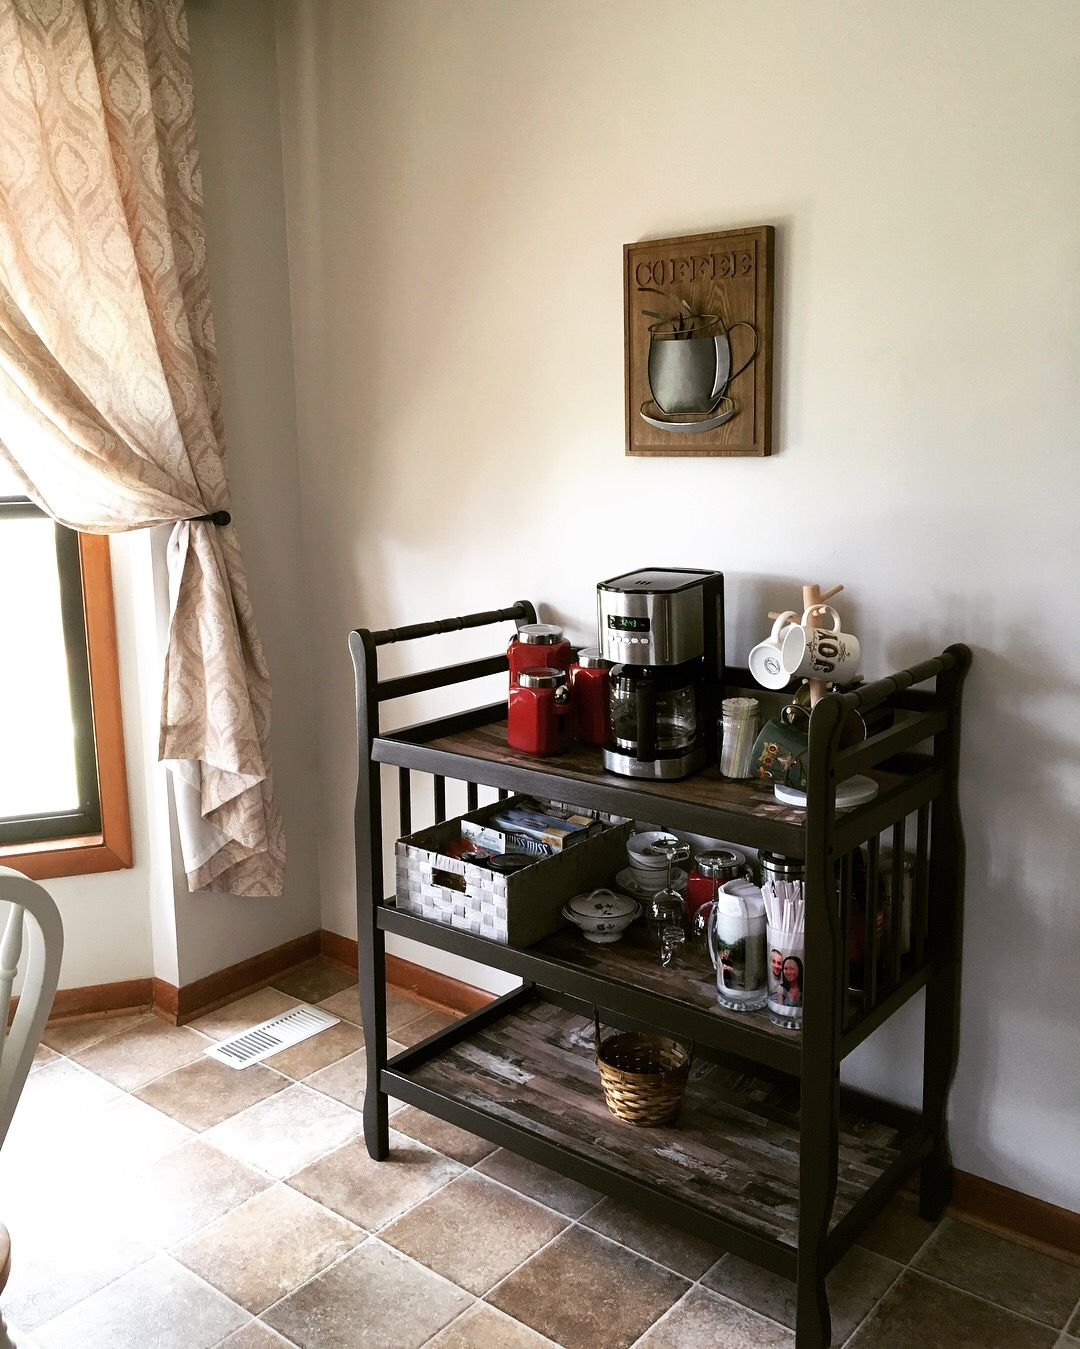 My Diy Coffee Bar Cart I Upcycled My Changing Table To This Coffee Bars In Kitchen Coffee Bar Home Bar Cart Decor